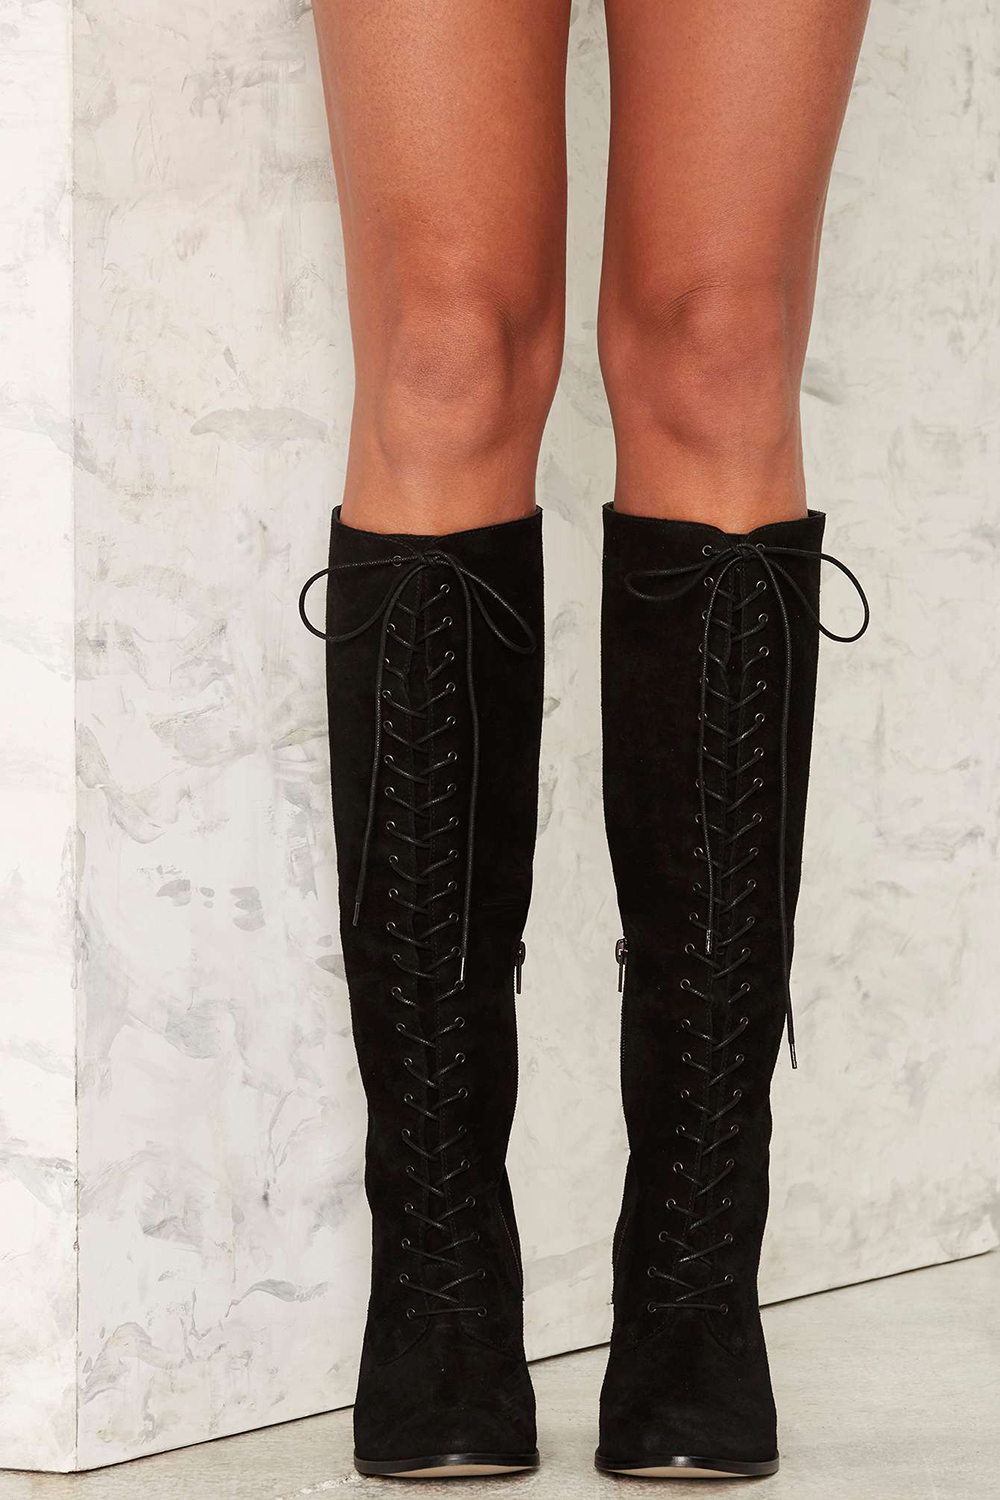 Matisse Princely Suede Boot - Witchy Boots